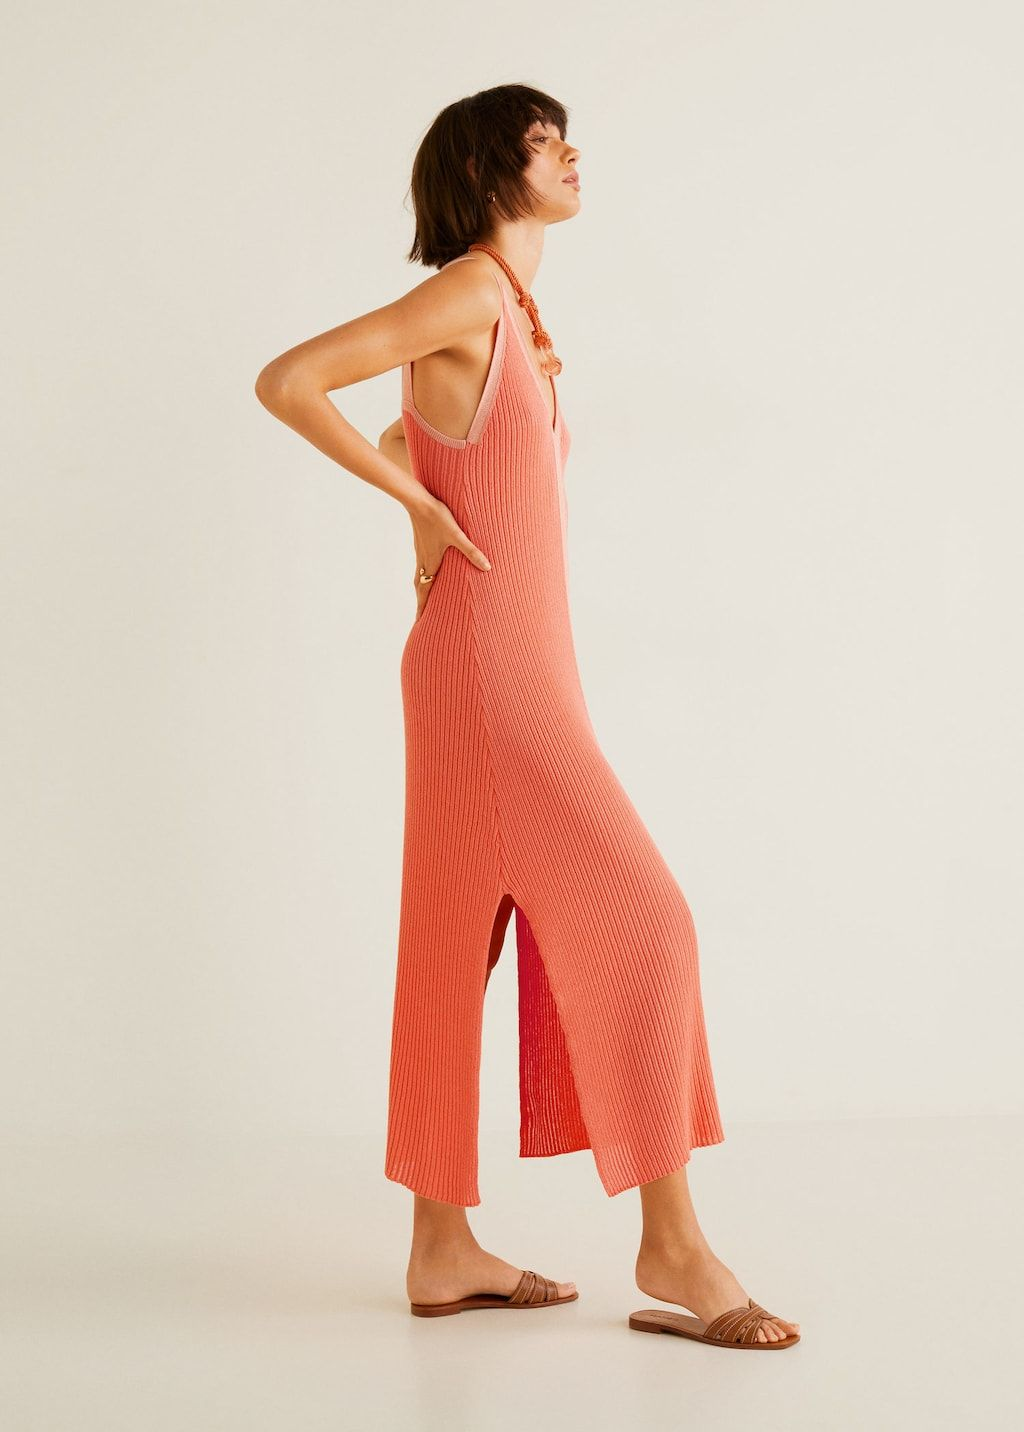 719d87fa7ac5e Contrast-bodice jersey dress - Woman in 2019 | Style Inspirations ...